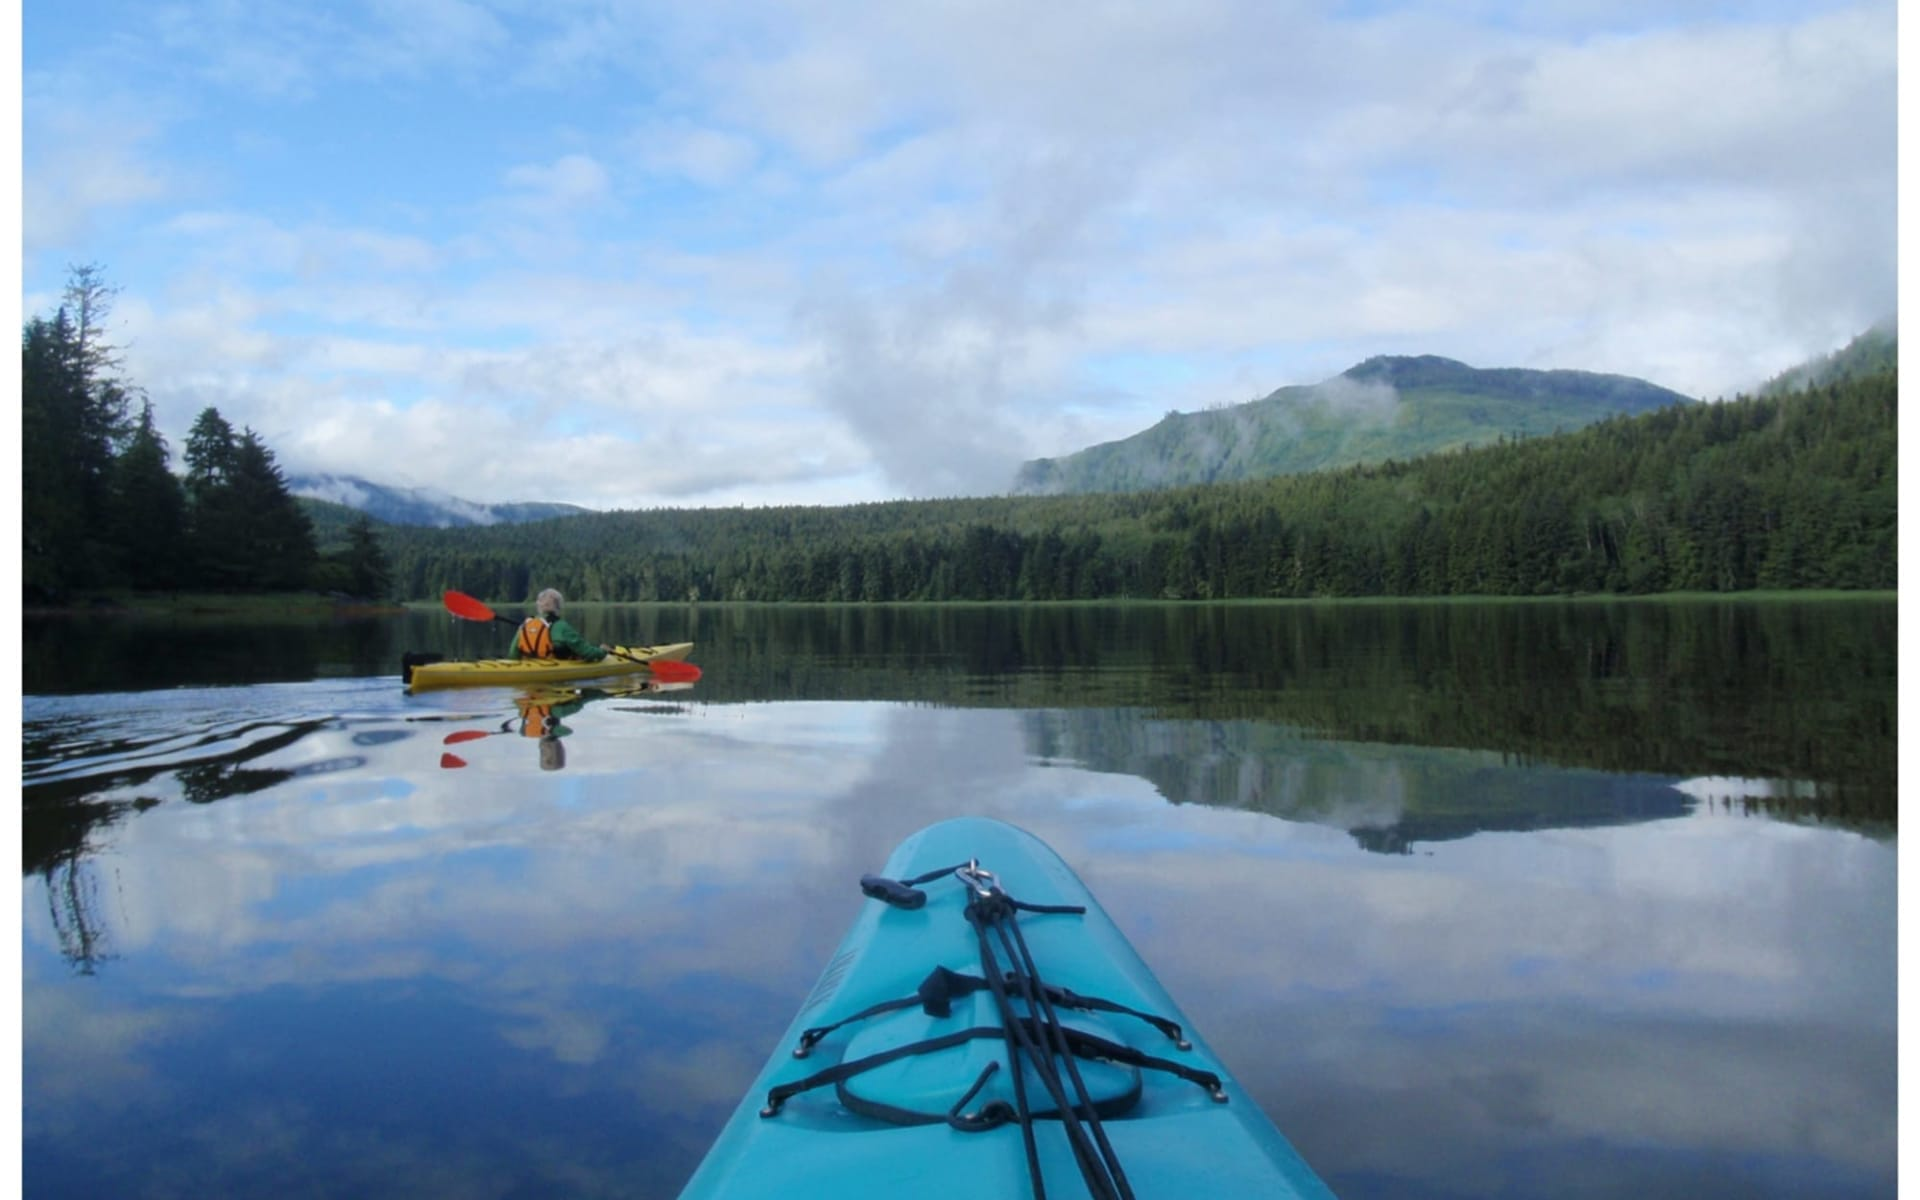 Bärenbeobachtung Knight Inlet Lodge 3 Tage ab Campbell River: activities: Knight Inlet Lodge - Kayaking